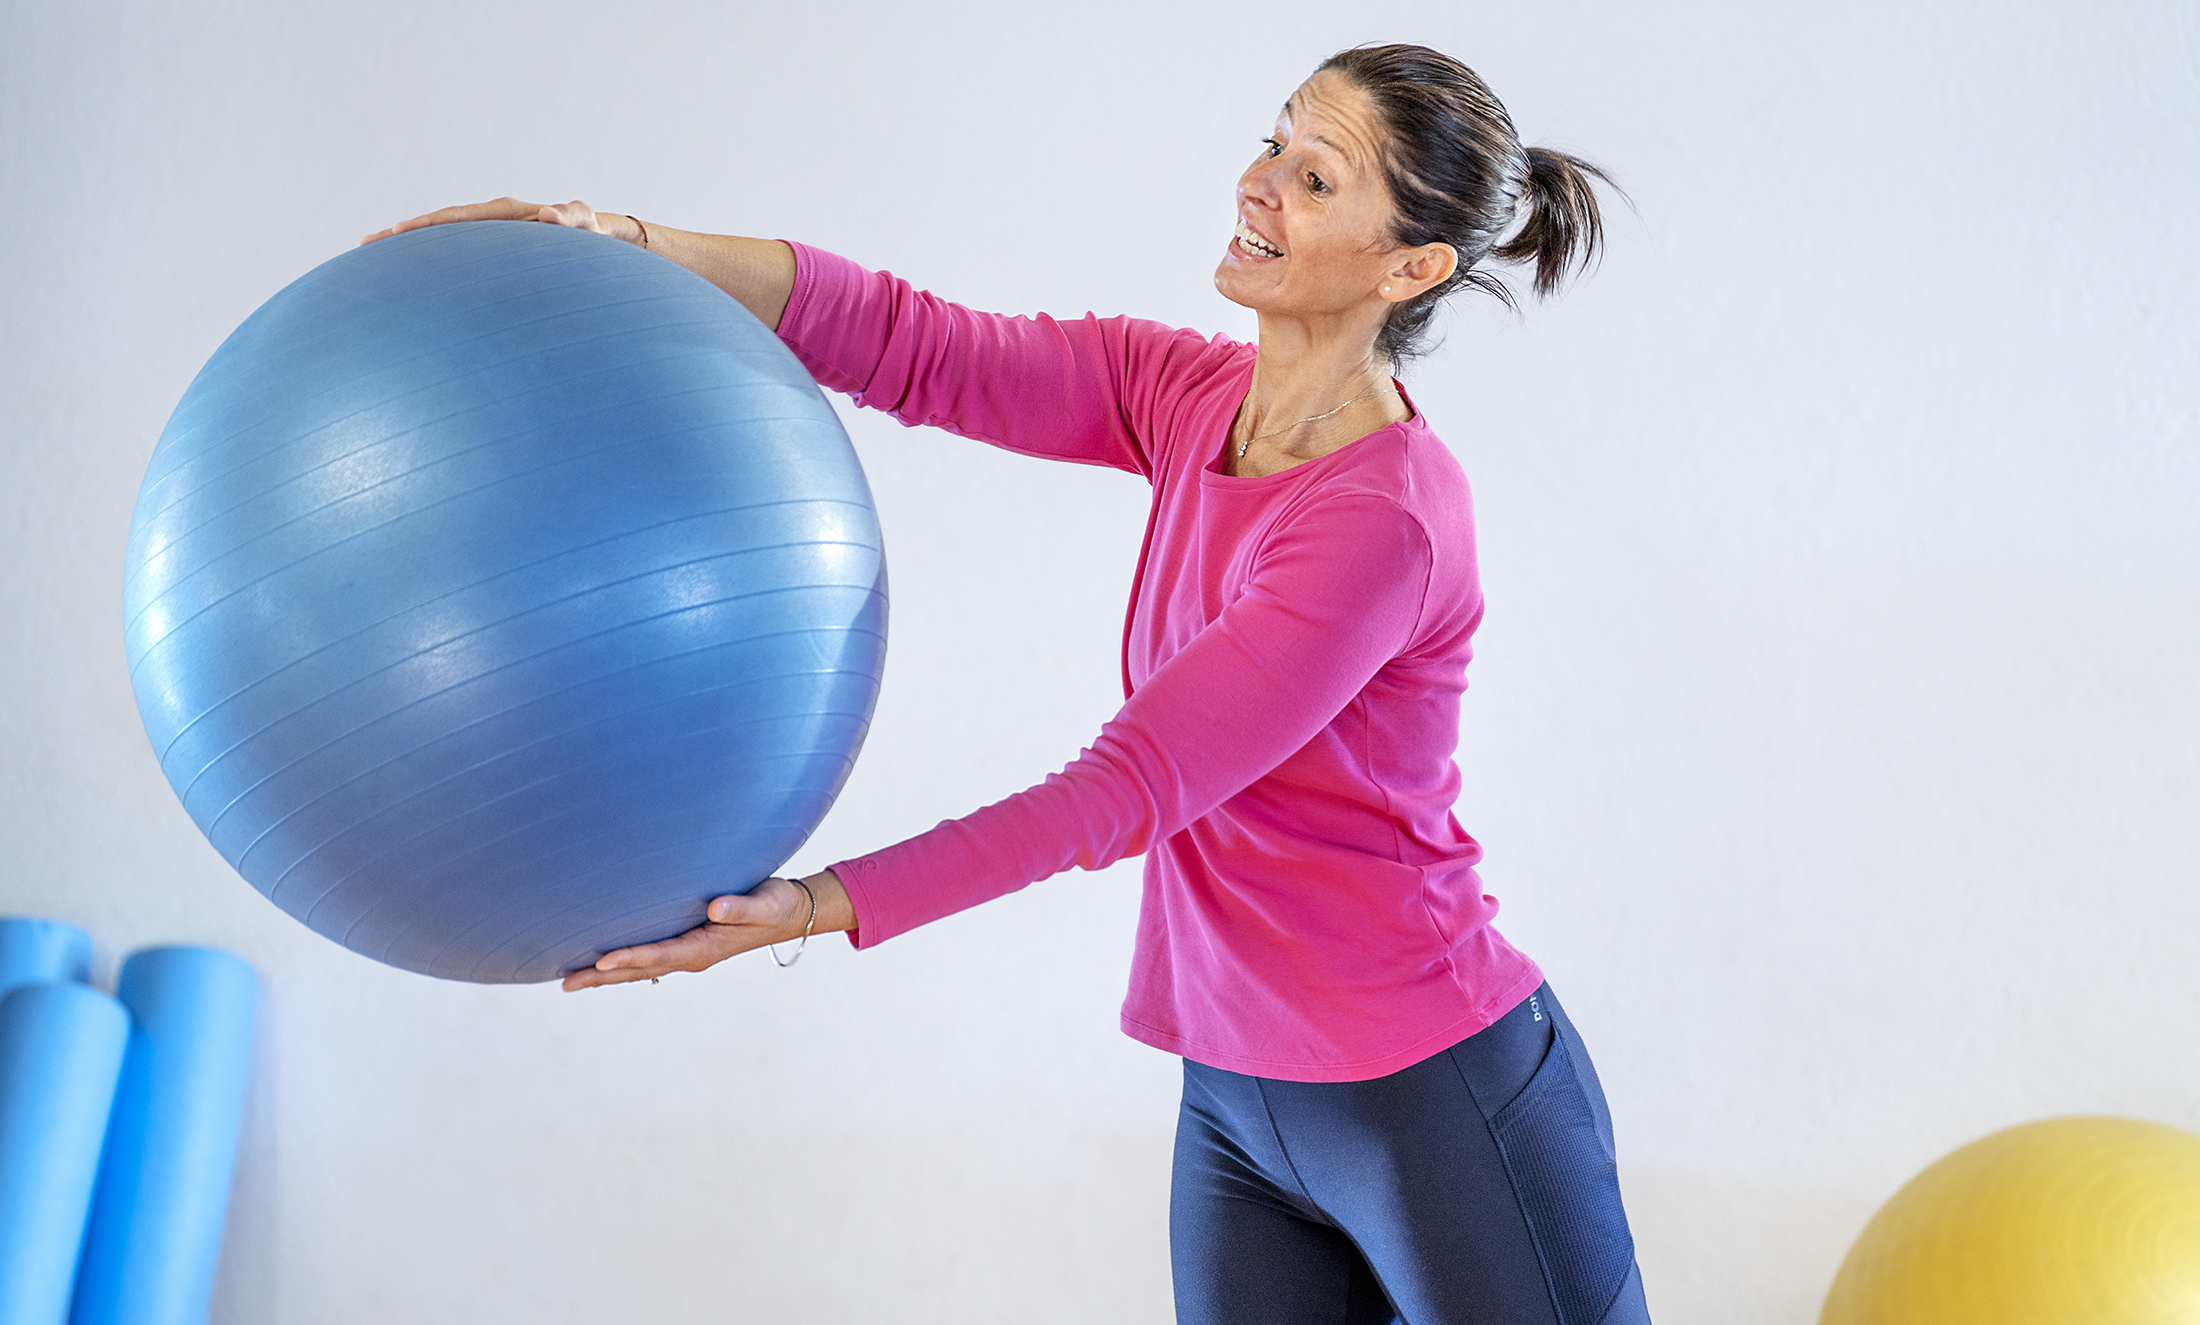 Lezione fitball pilates online